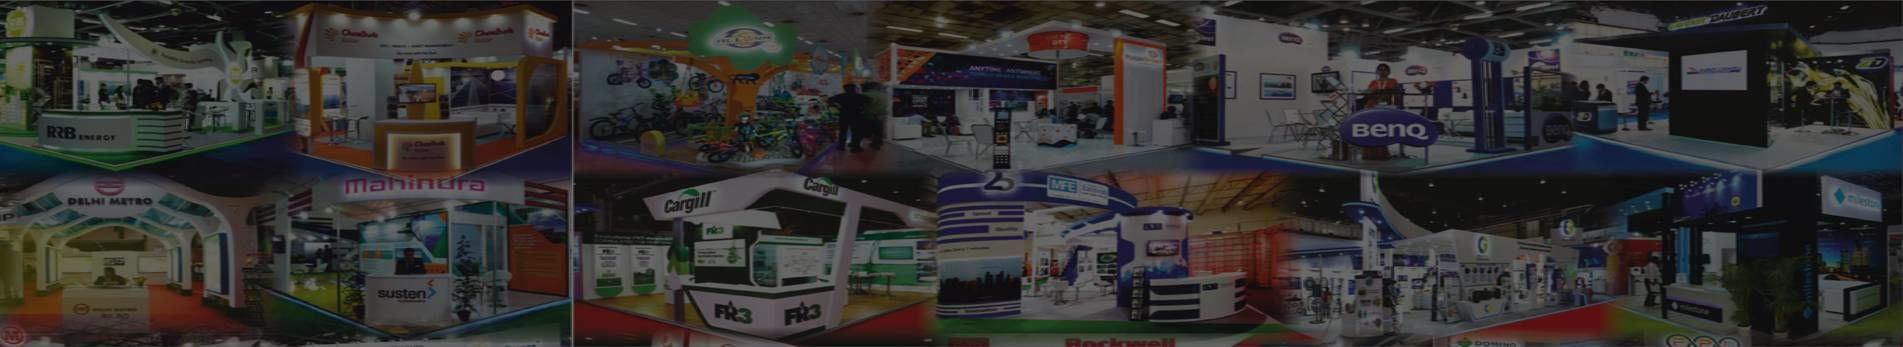 7 Trade Show Trends You Need to Incorporate in 2019 - Panache Exhibitions